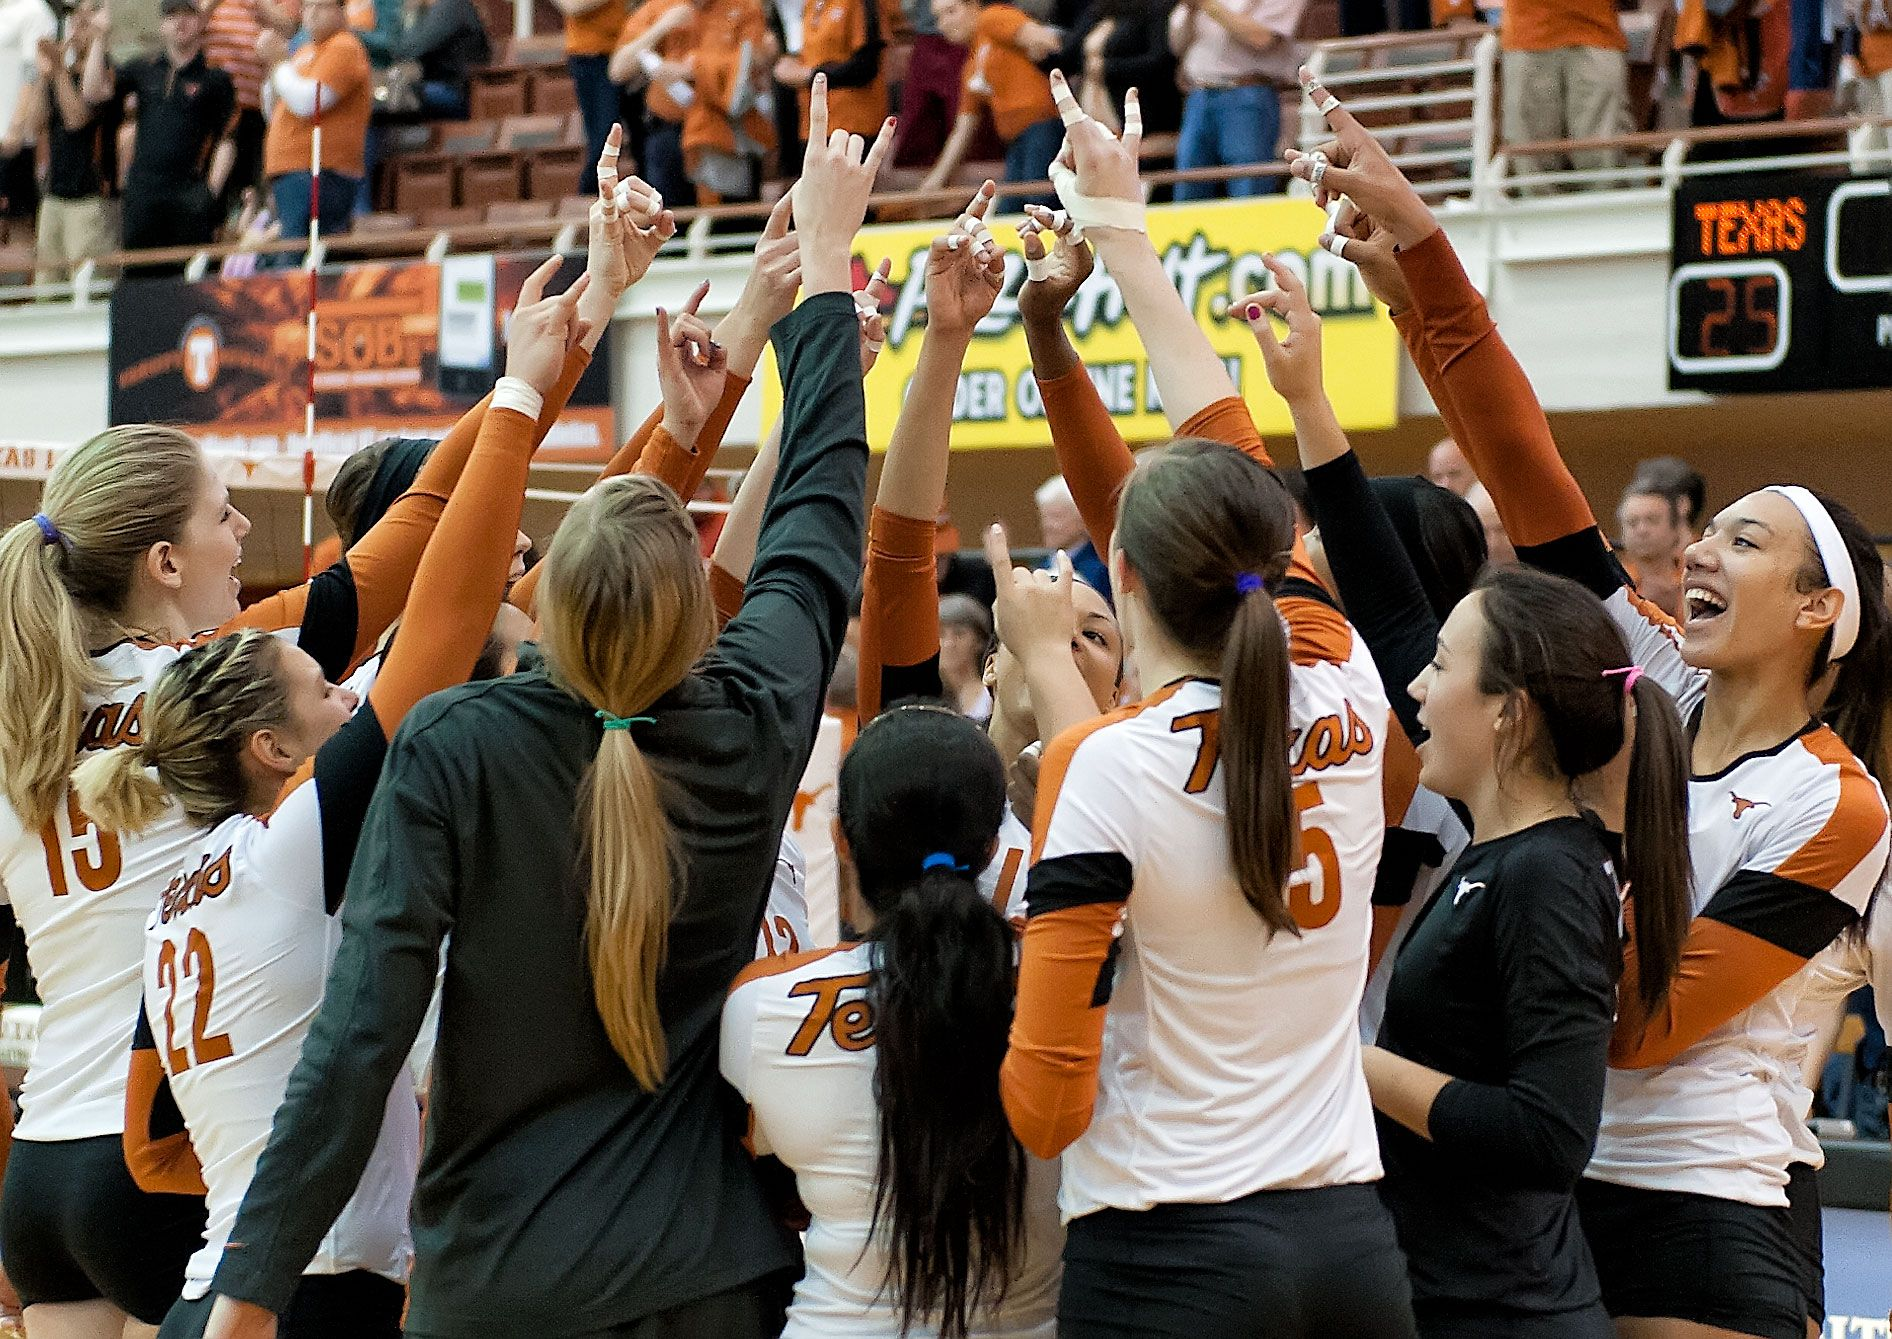 Senior Day Longhorns Volleyball Volleyball Team Sports Photography Senior Day